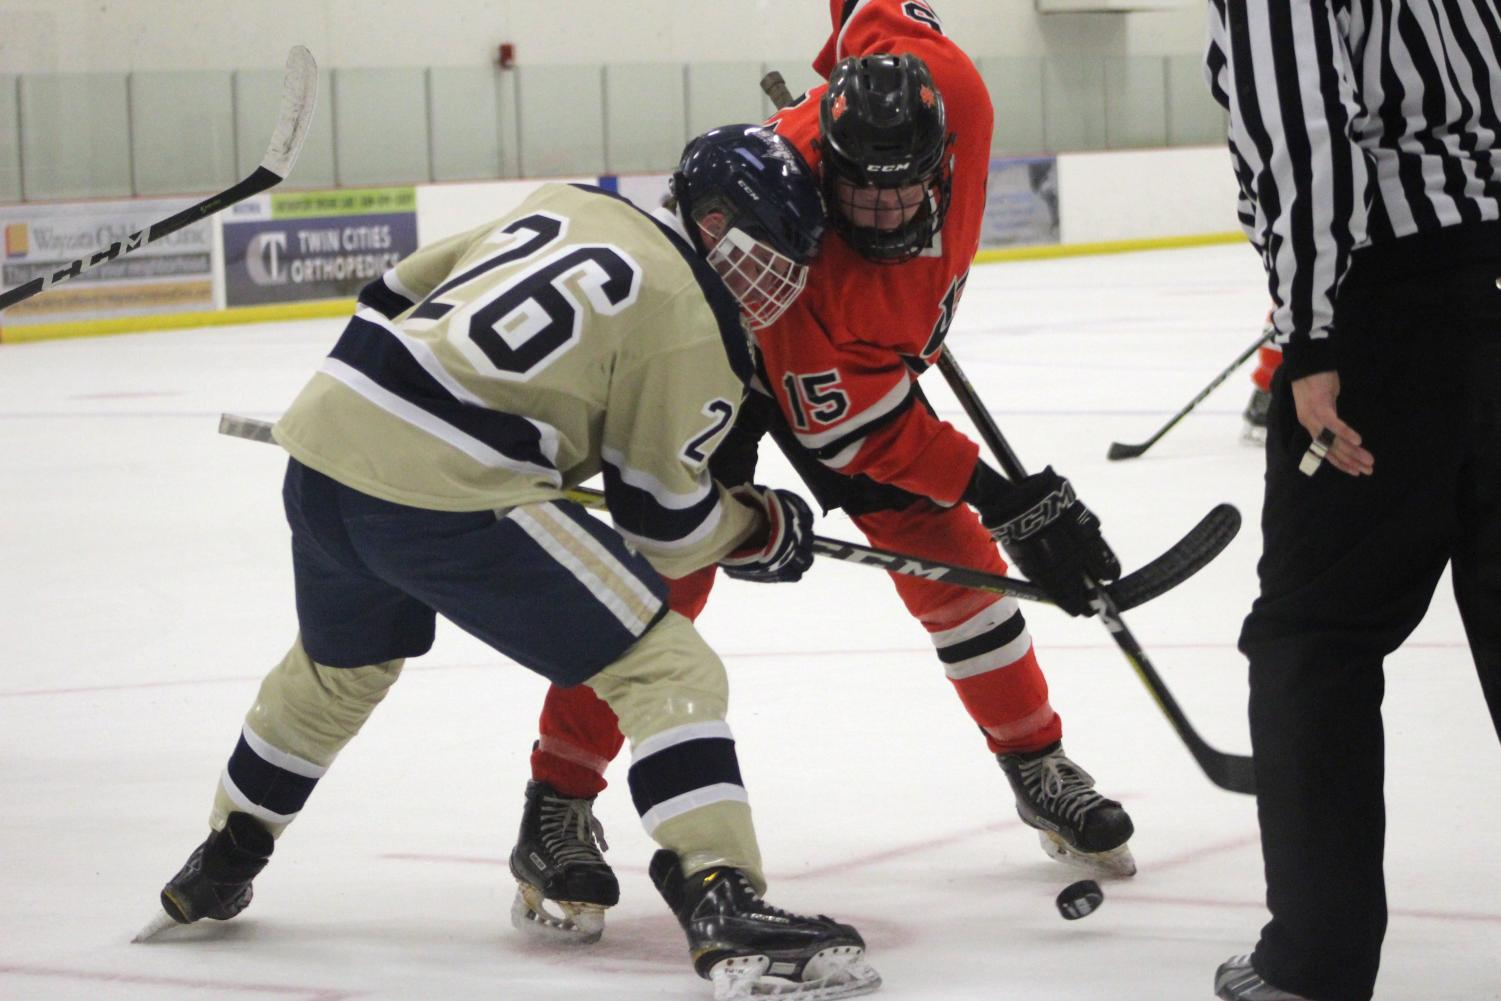 Senior Luke Mobley faces off against Chanhassen player Charlie Montag. Park beat Chanhassen 3-1 Feb. 8 at Victoria Field House.